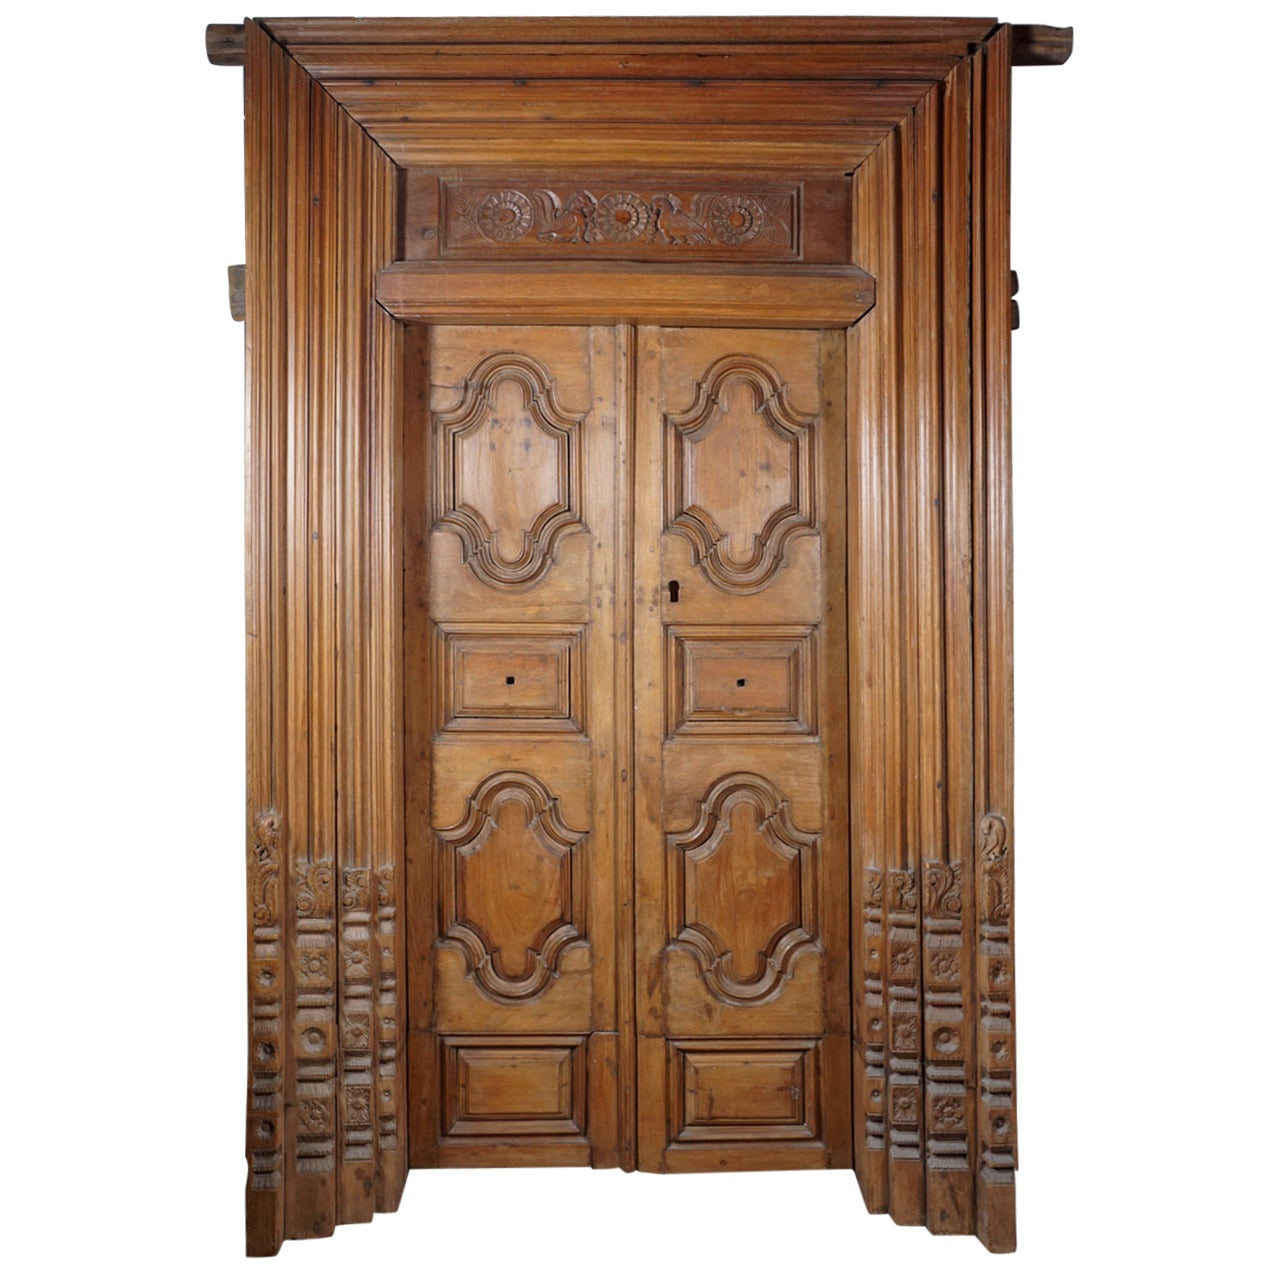 19th Century Hand Carved Teak Wood Doors